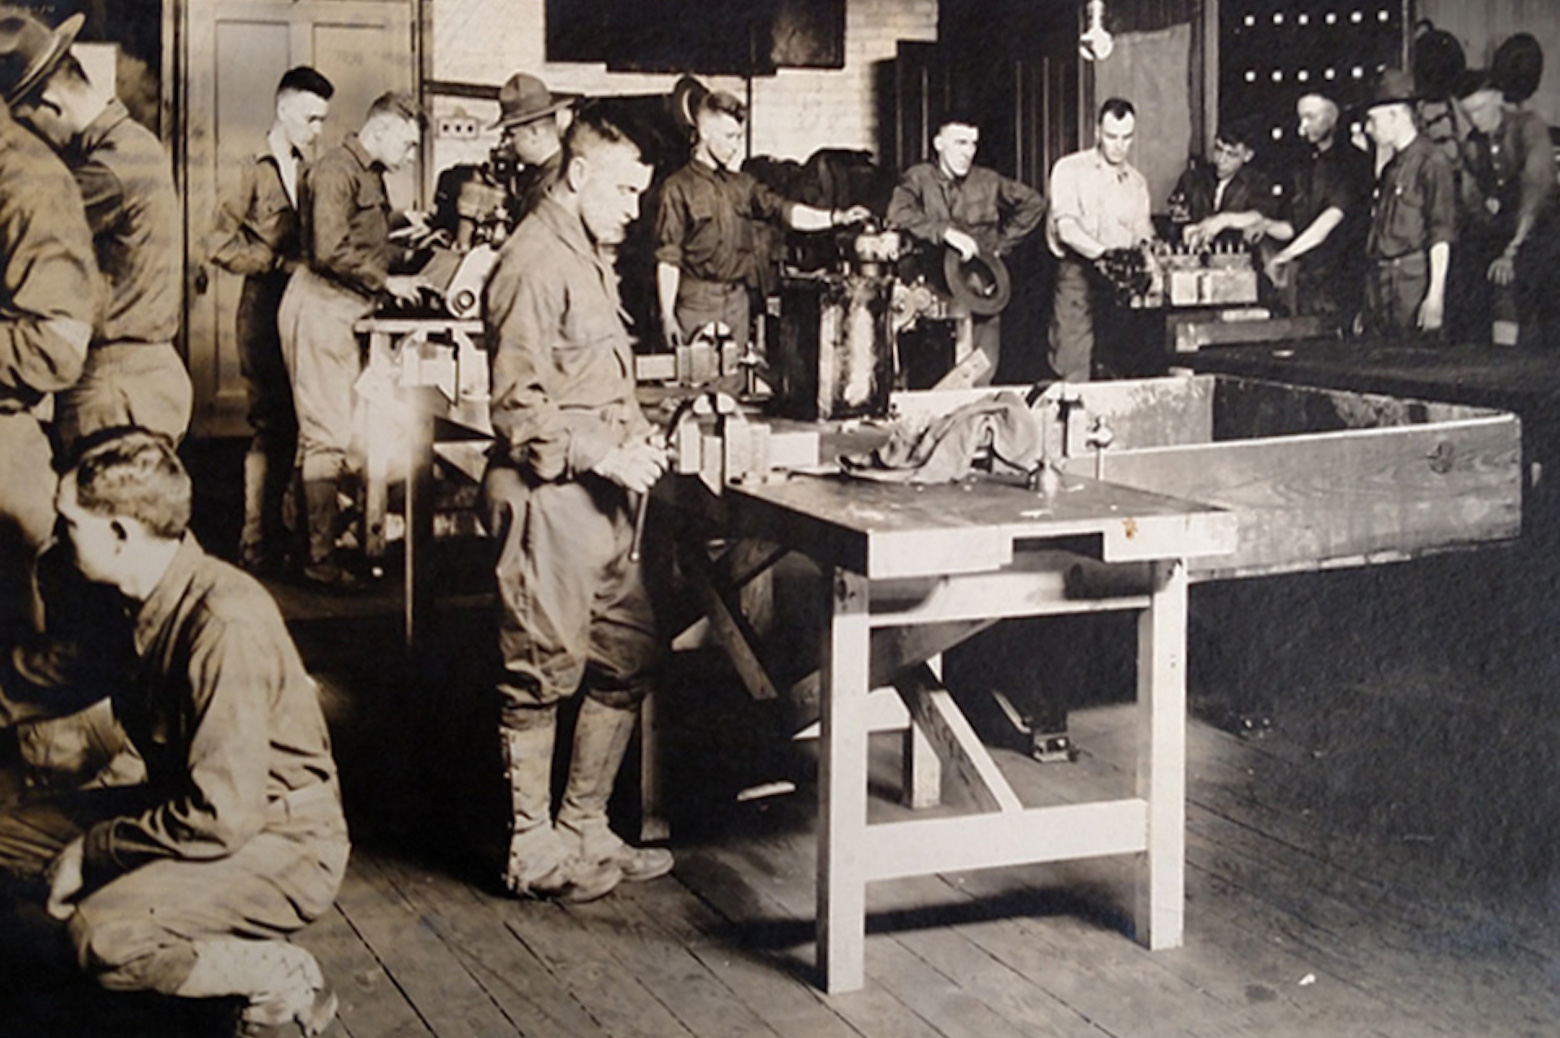 Men working with tools in a workshop